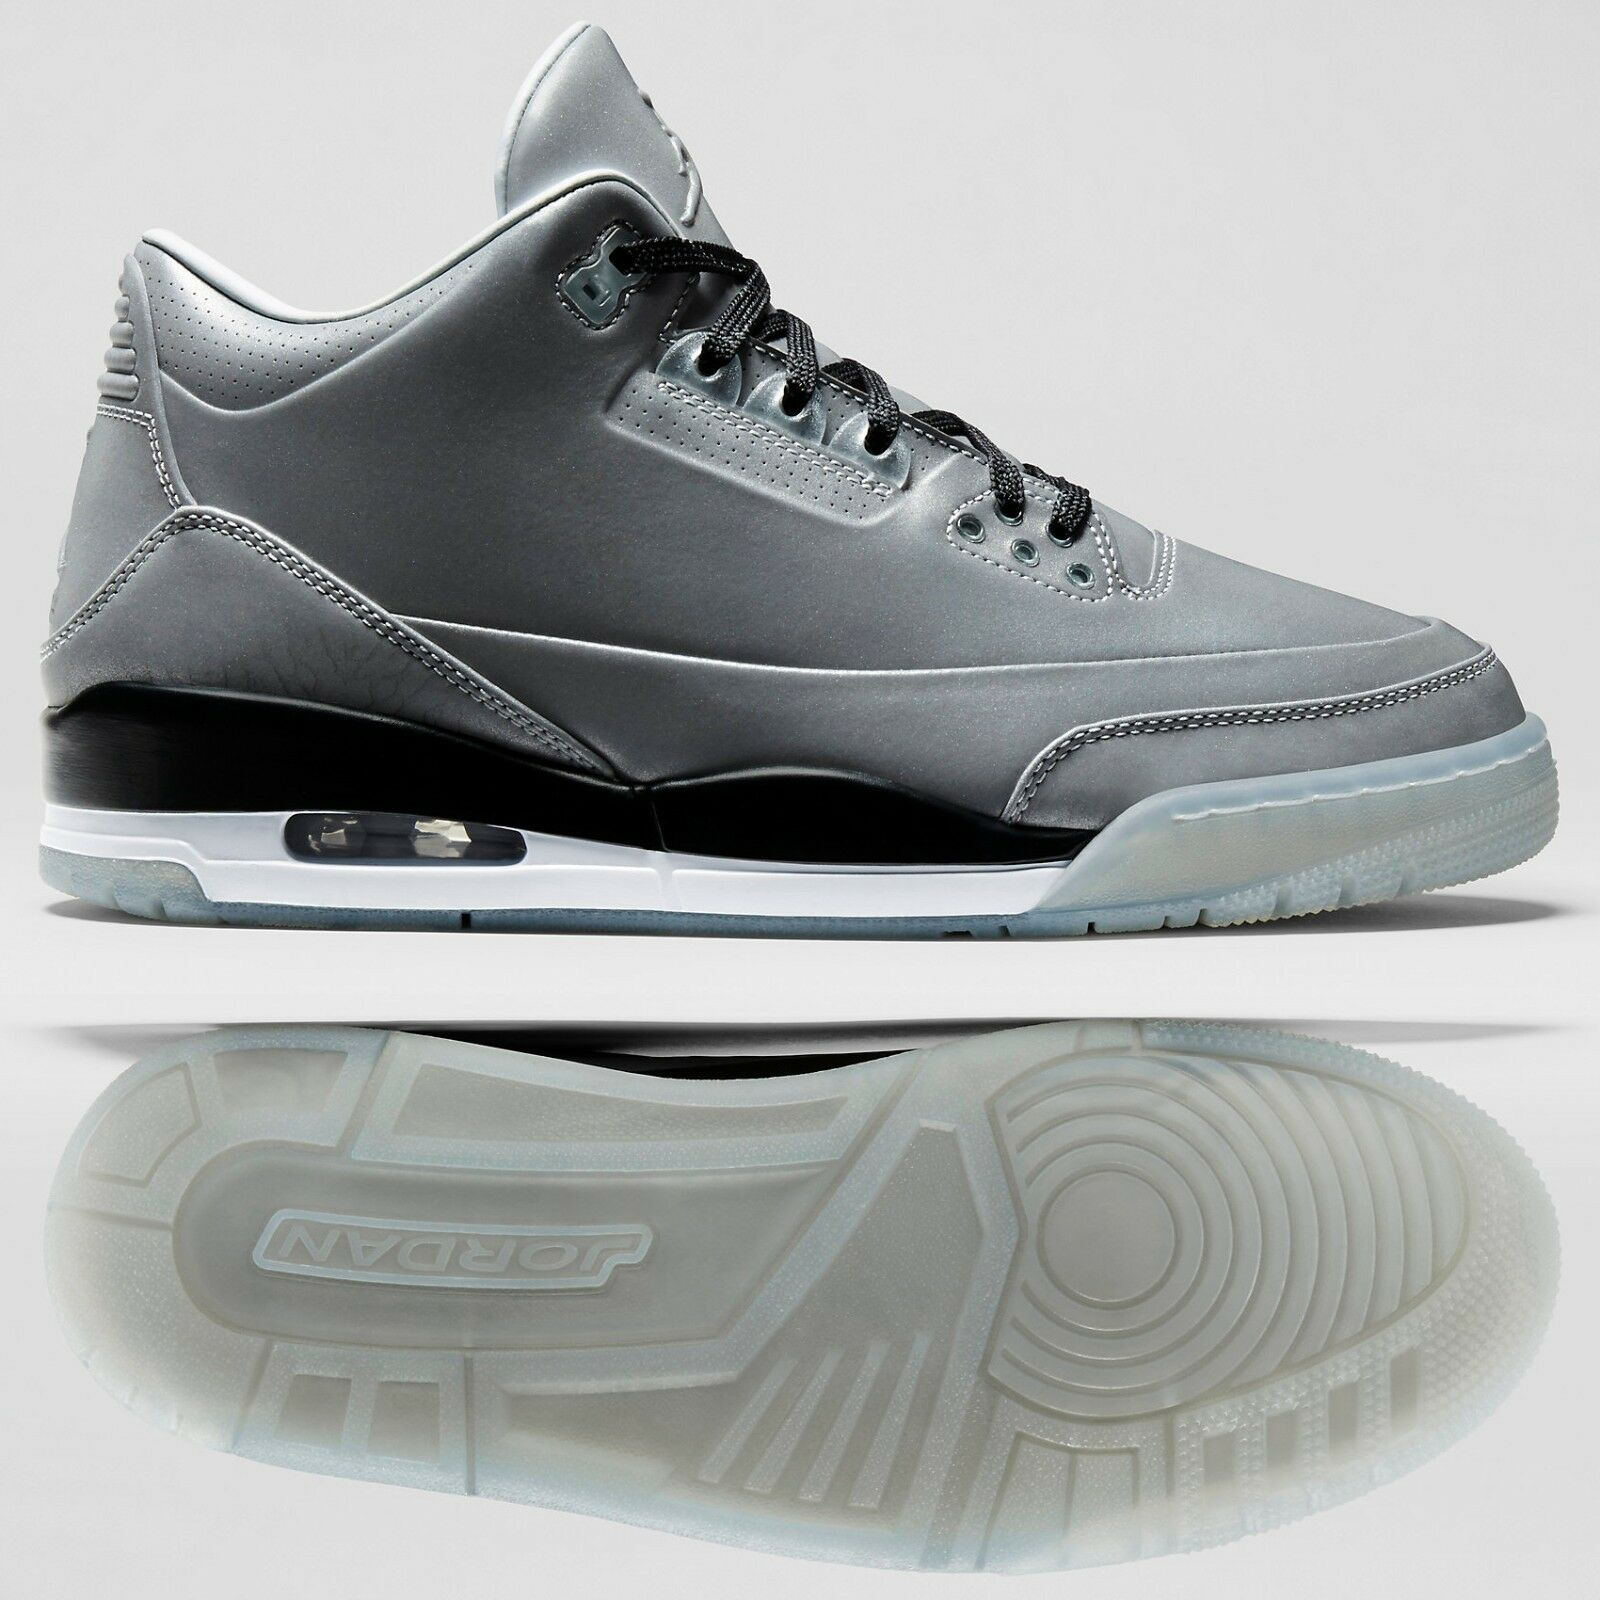 check out af482 8952e ... denmark nike air jordan 5lab3 631603 003 reflejan plata jordan negro  blanco 3m hombre shoes sz